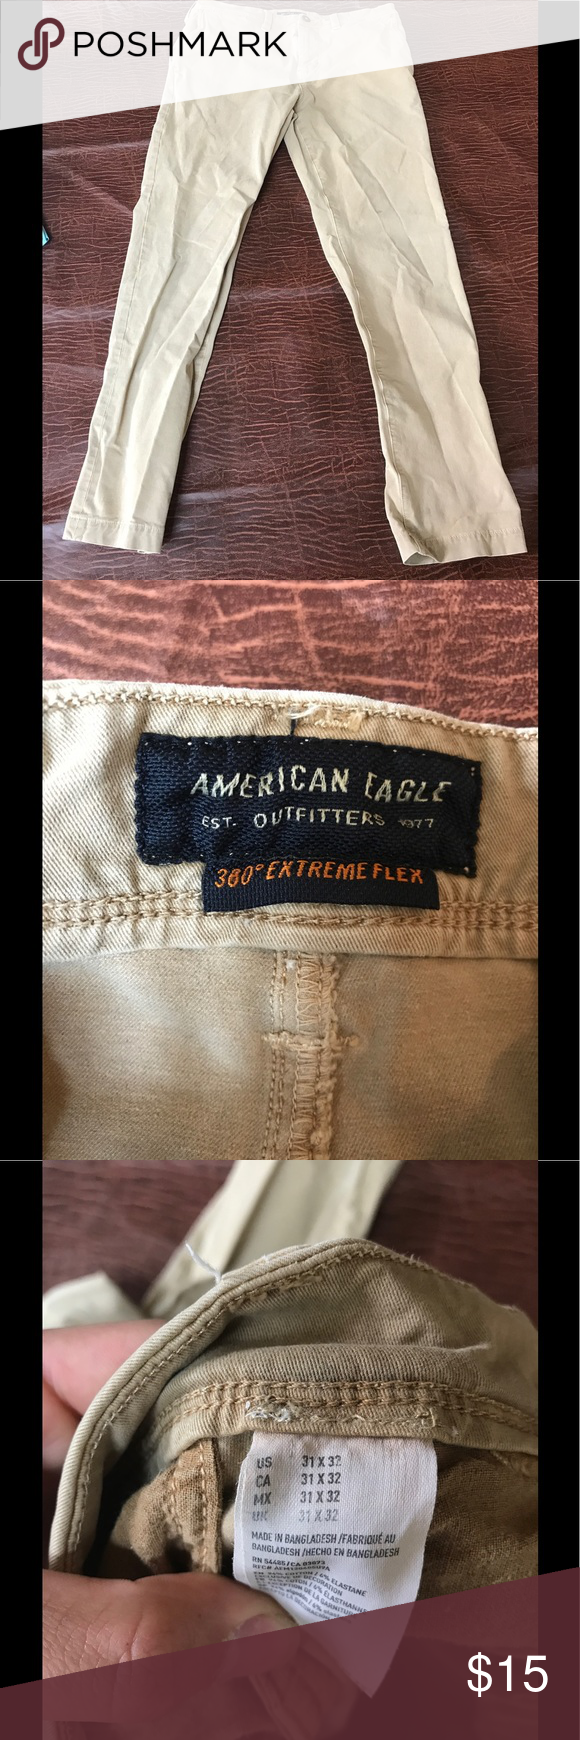 Men's khaki pants American Eagle men's khaki pants.   Small stain on front left pant above the knee.  Small stain back let below pocket.  See pictures please American Eagle Outfitters Pants Chinos & Khakis